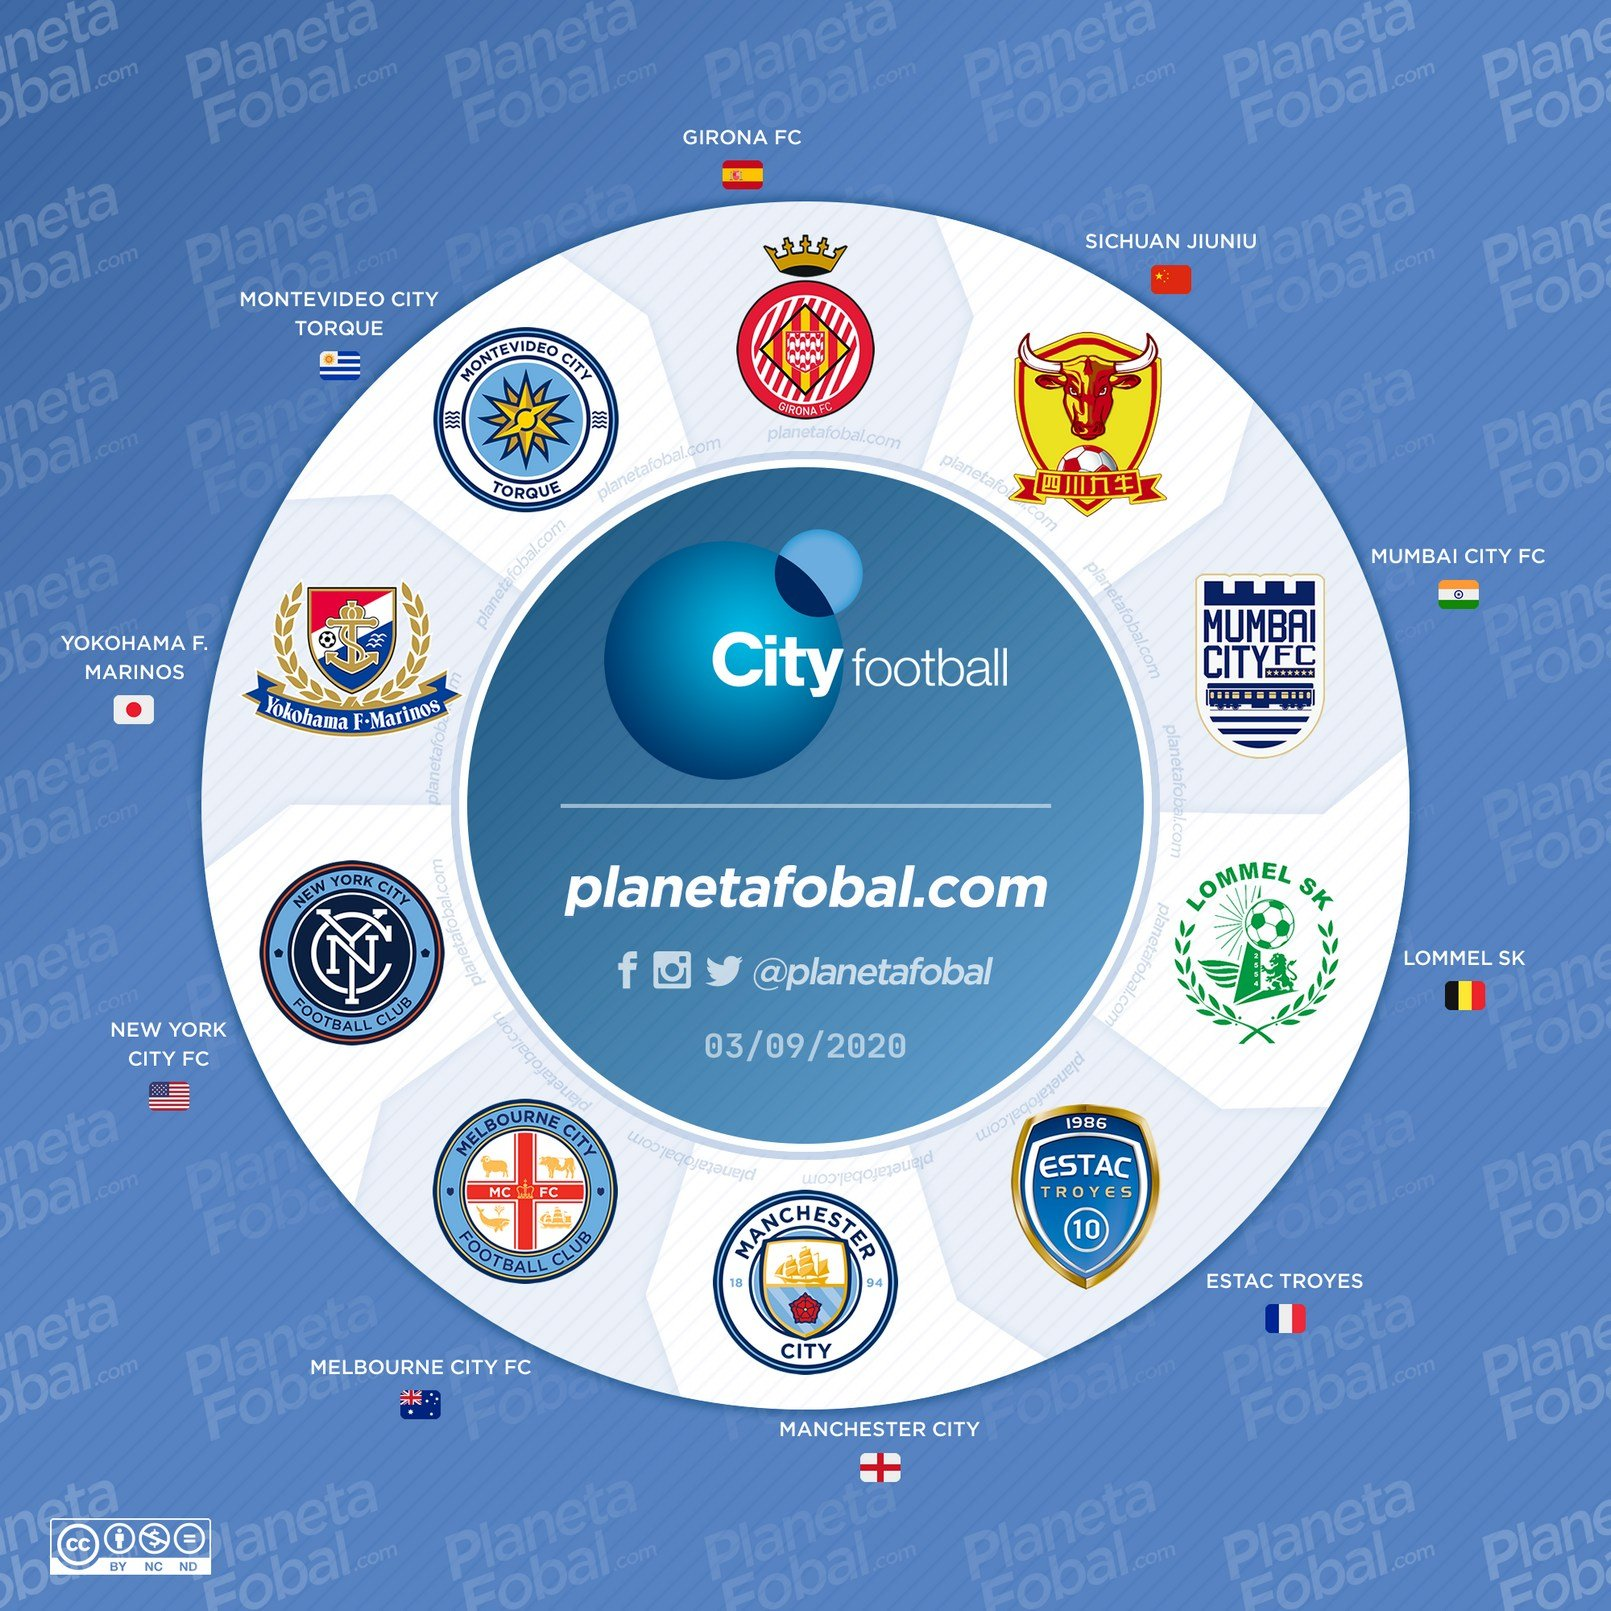 city-football-group-equipos-2013-2020-yp